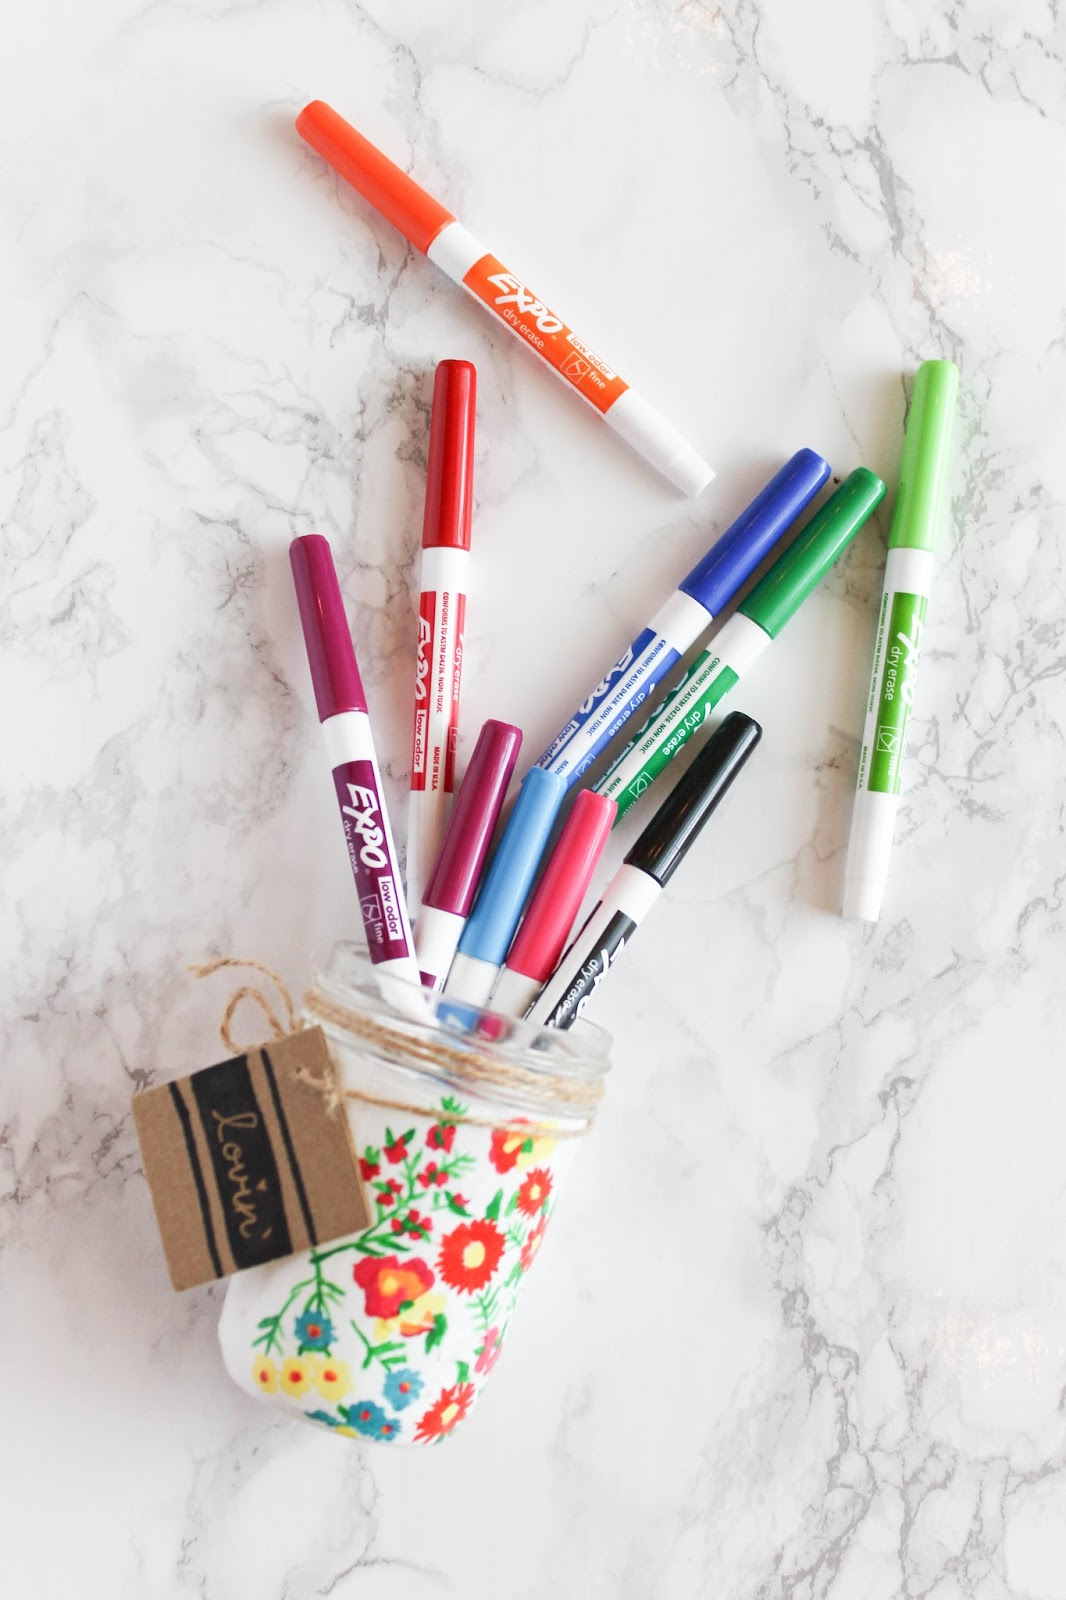 Best Dry Erase Markers for College | The Bella Insider